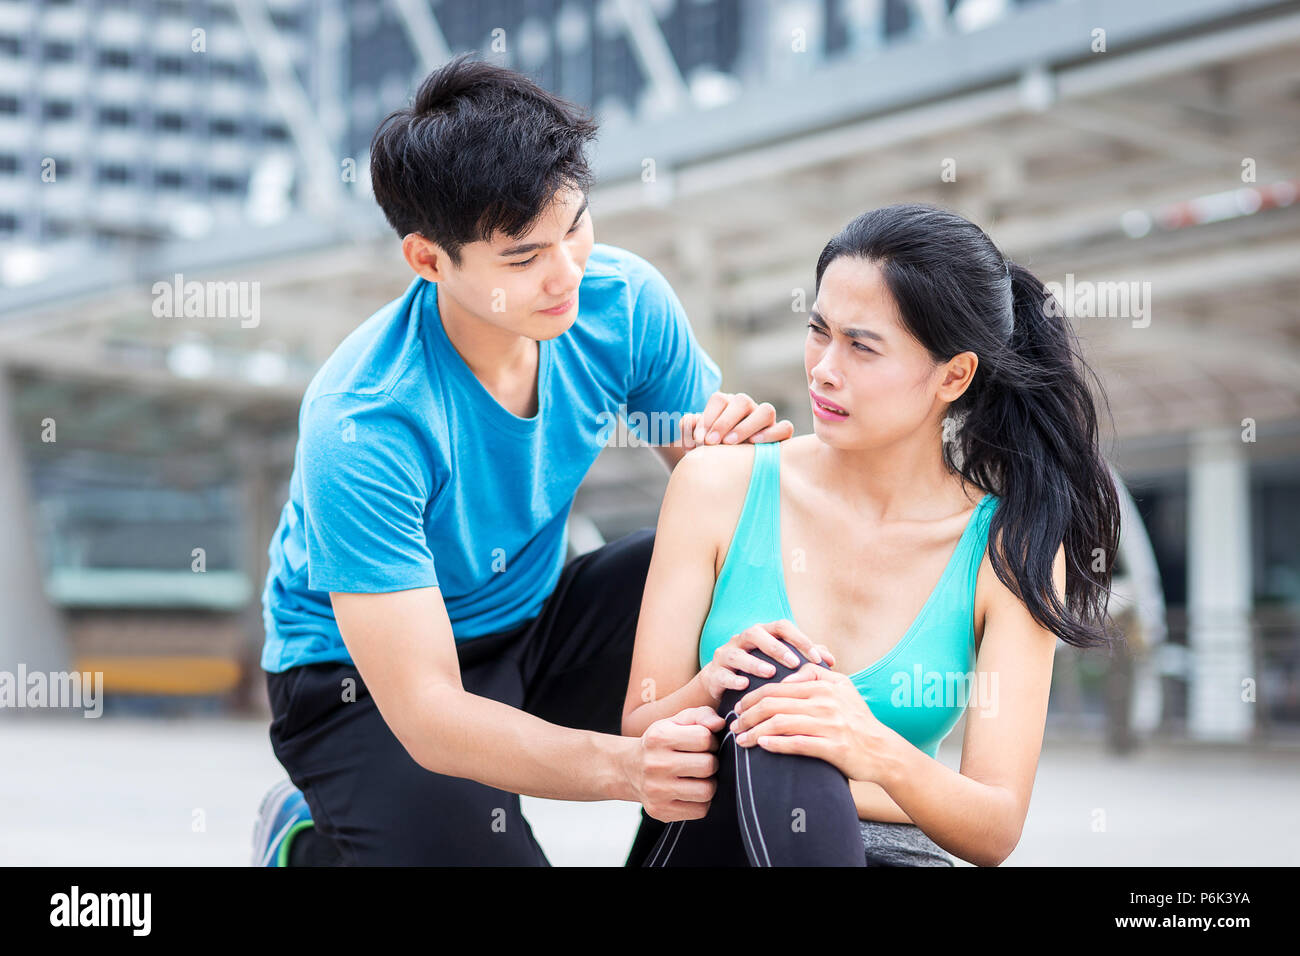 running injury, man help sport girl from  ankle hurt accident from playing sport in the city - Stock Image